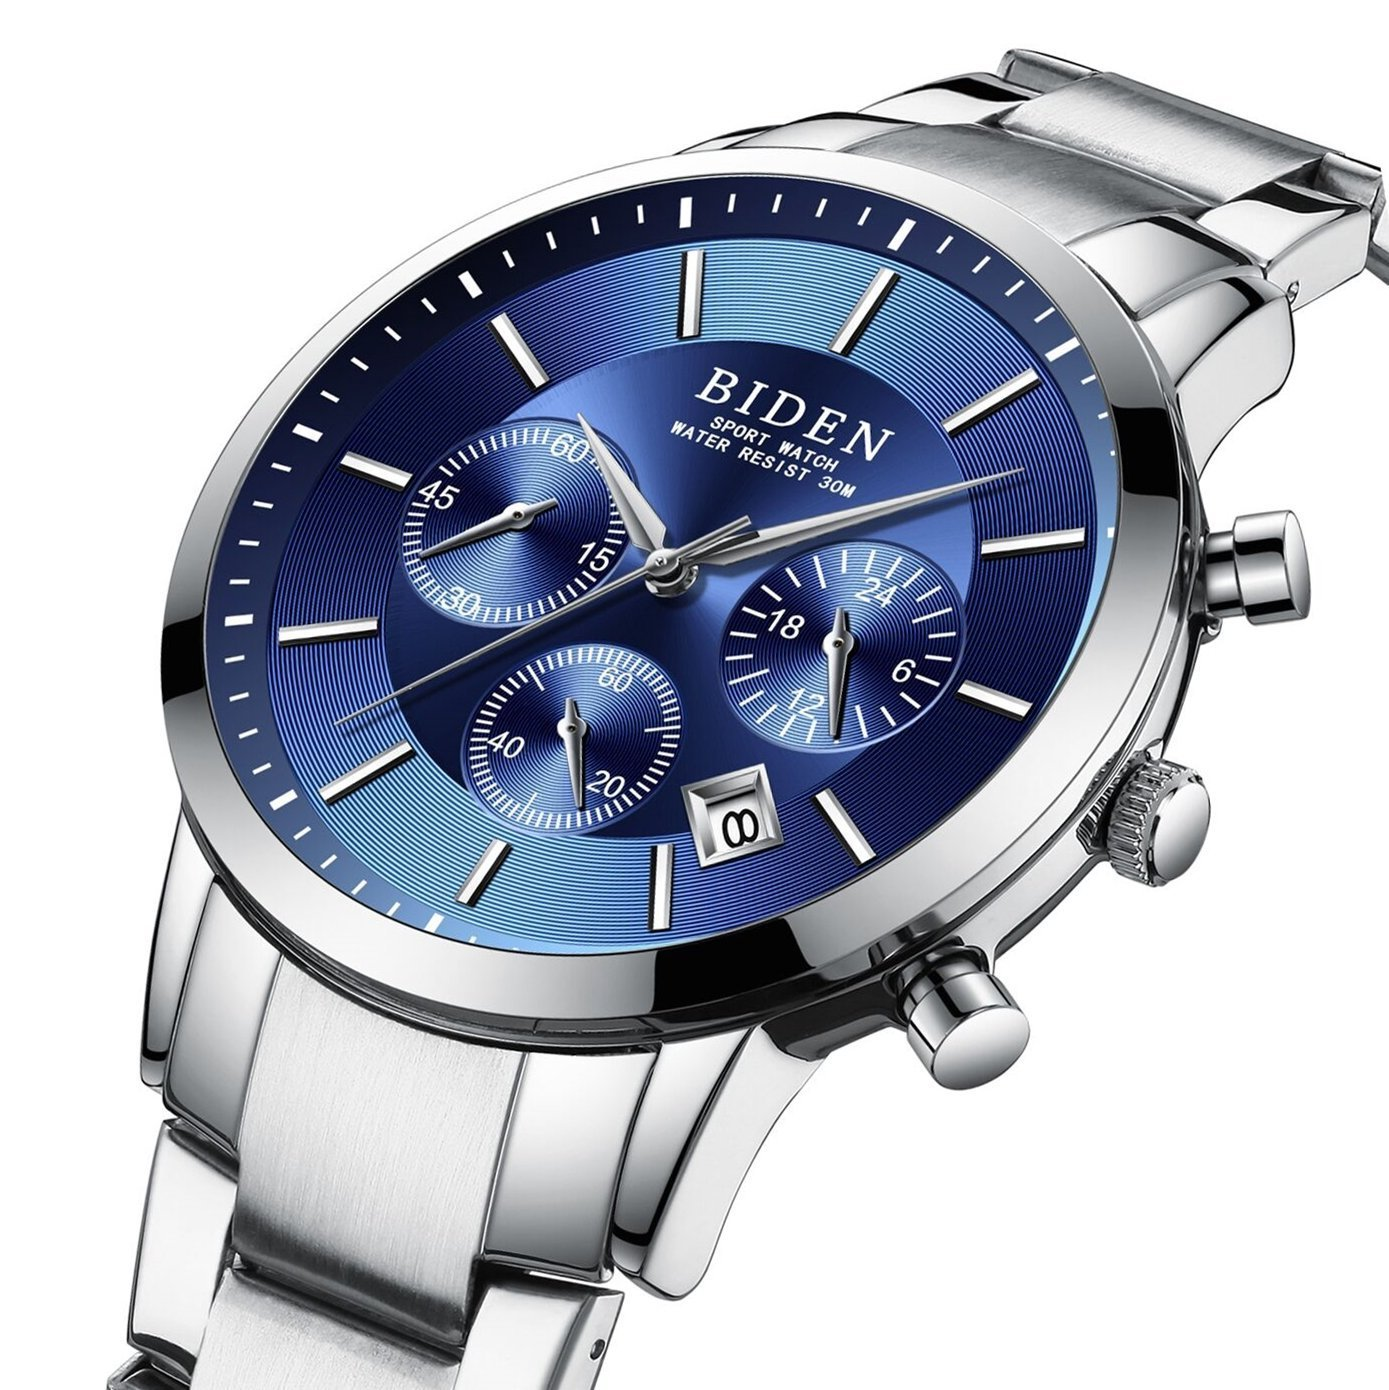 Watch,Mens Watches,Sport Casual Fashion Business Wrist Watch,Stainless Steel Waterproof Silver Blue Multifunctional Chronograph